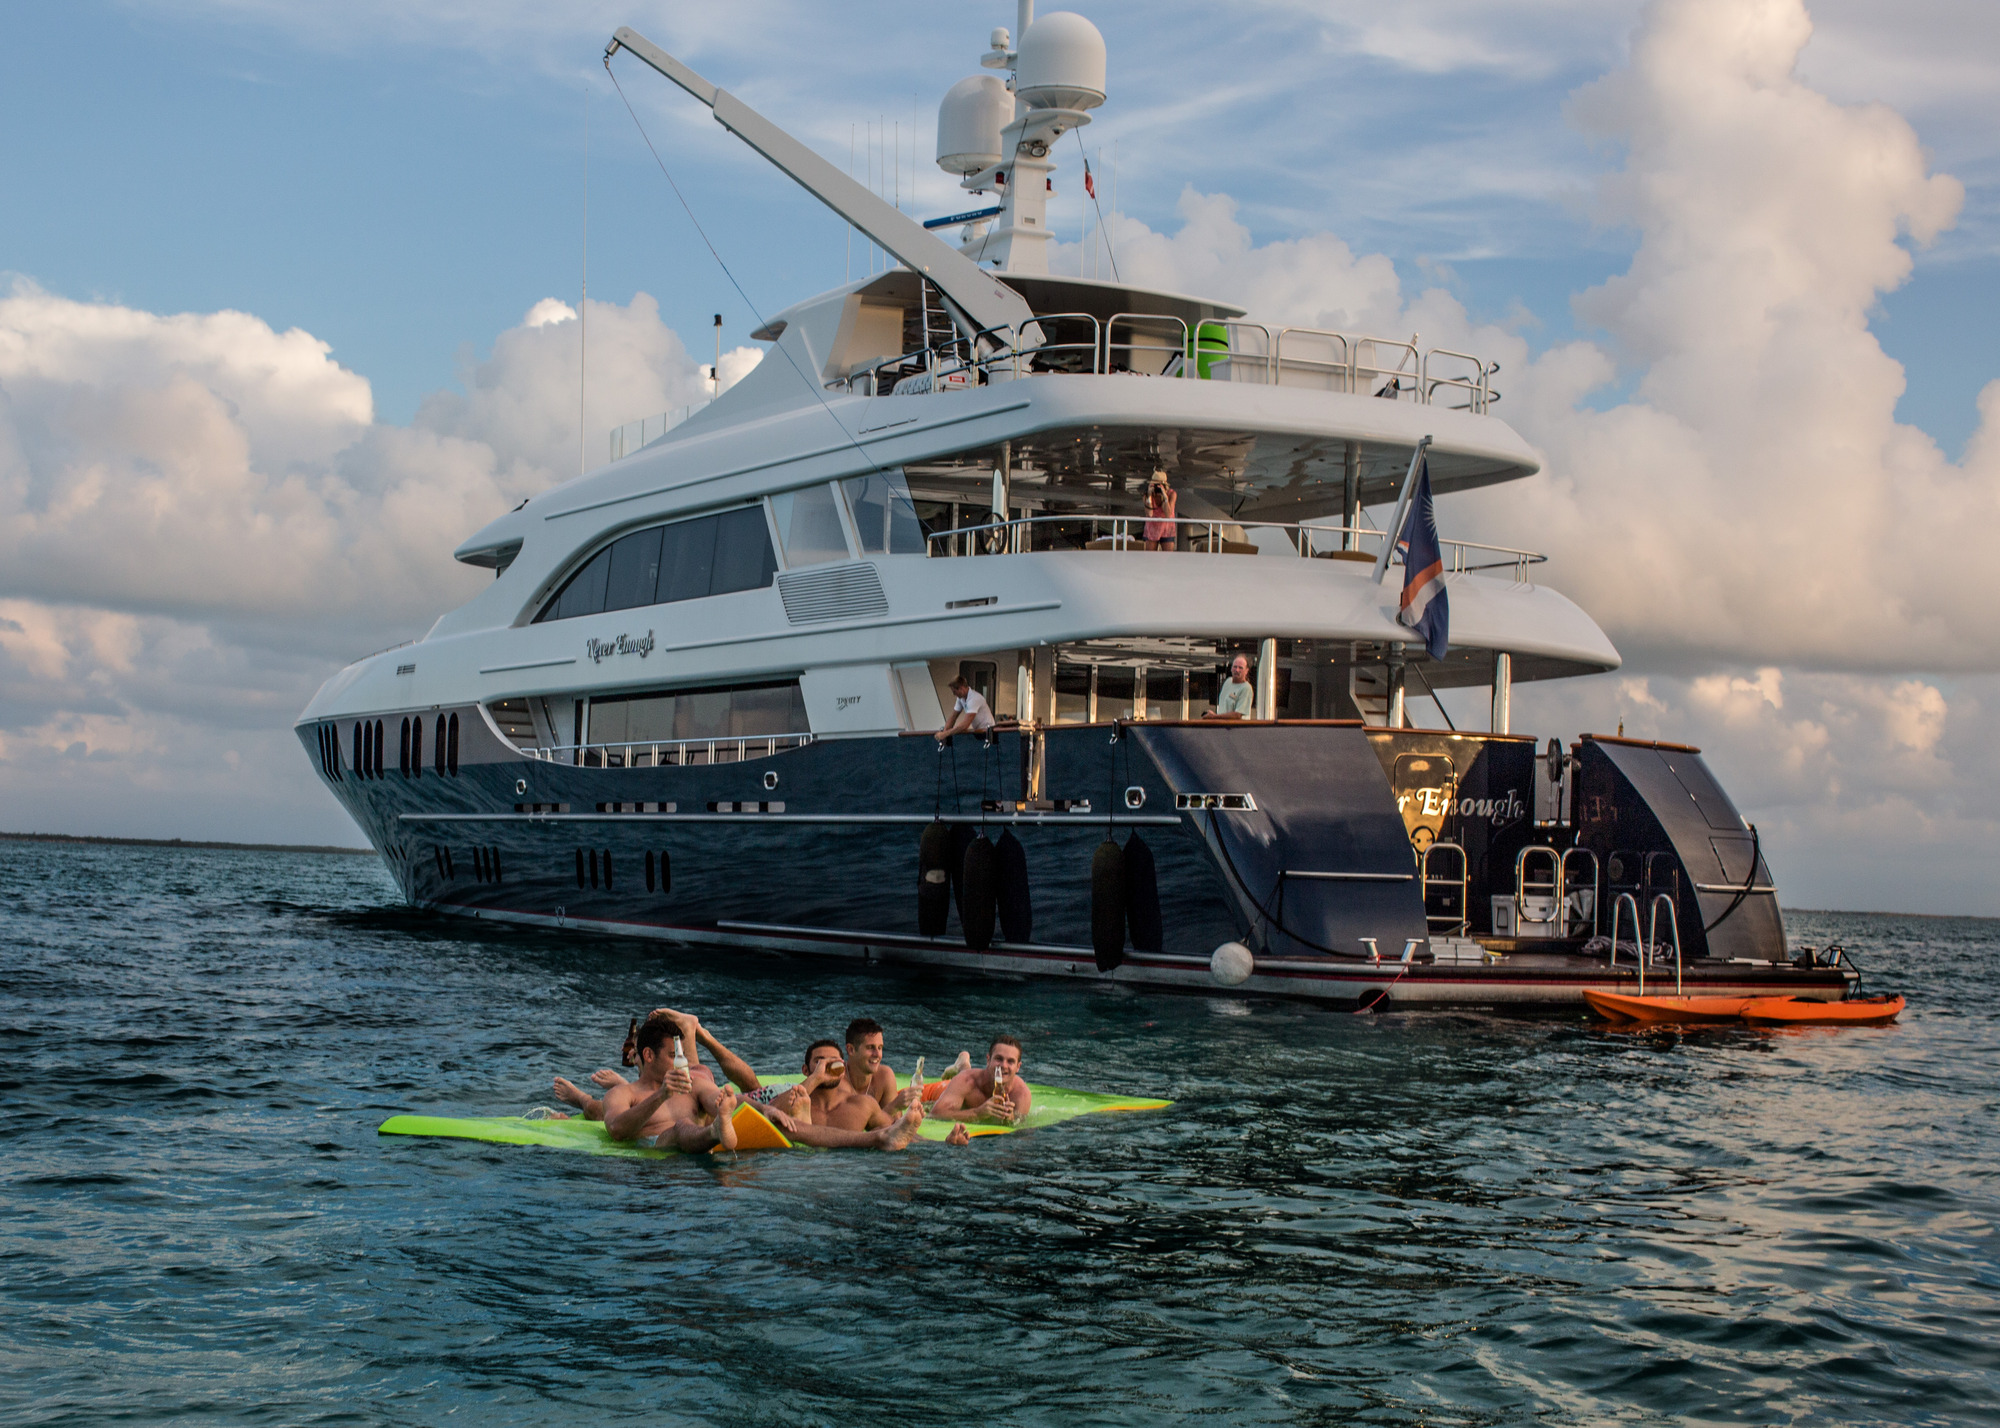 Endless Fun With Water Toys Aboard Motor Yacht Never